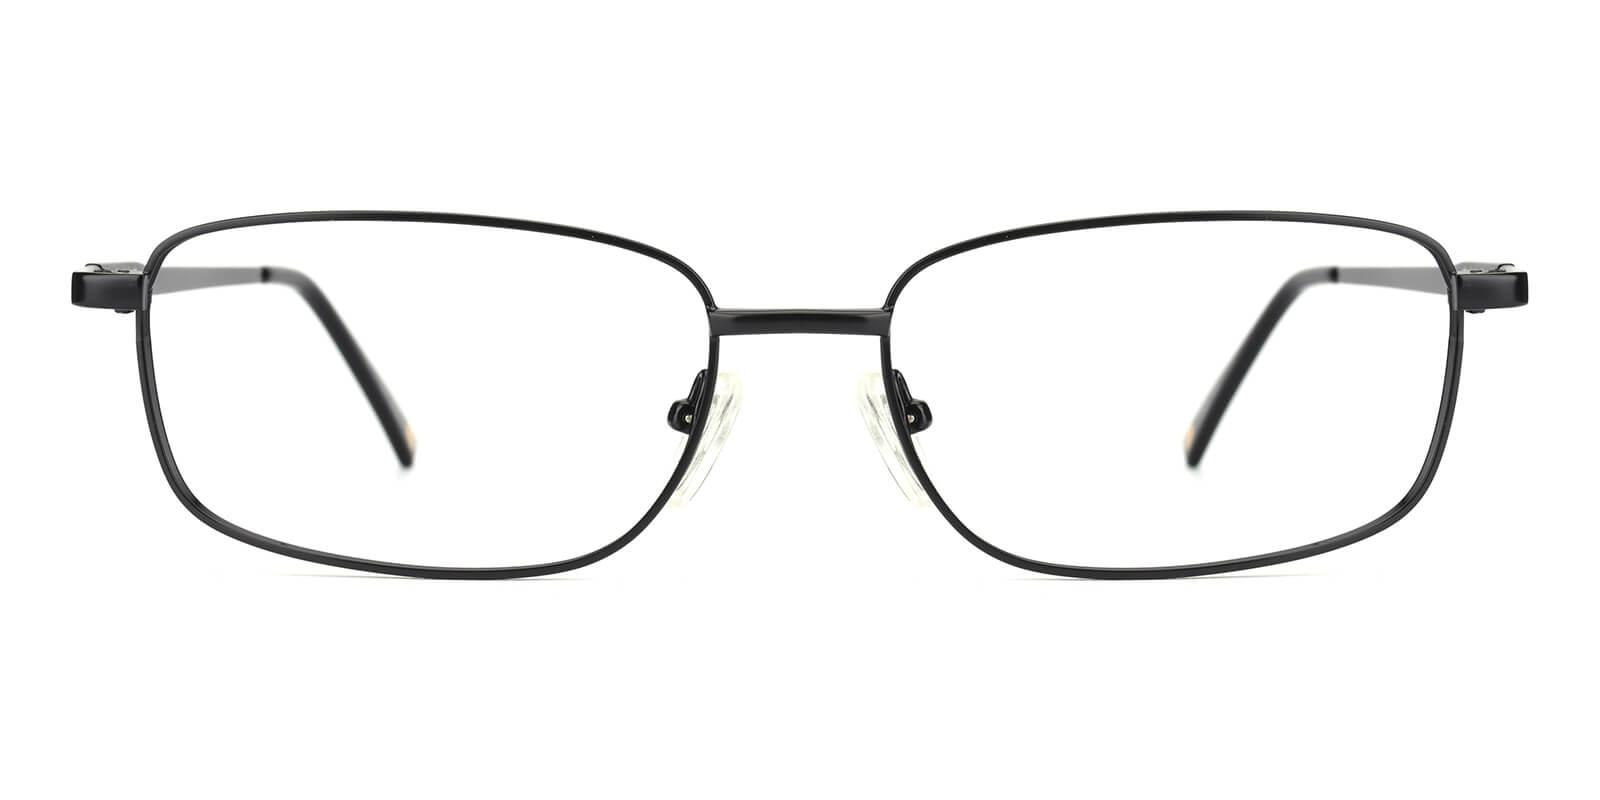 Michelly-Black-Rectangle-Metal-Eyeglasses-additional2